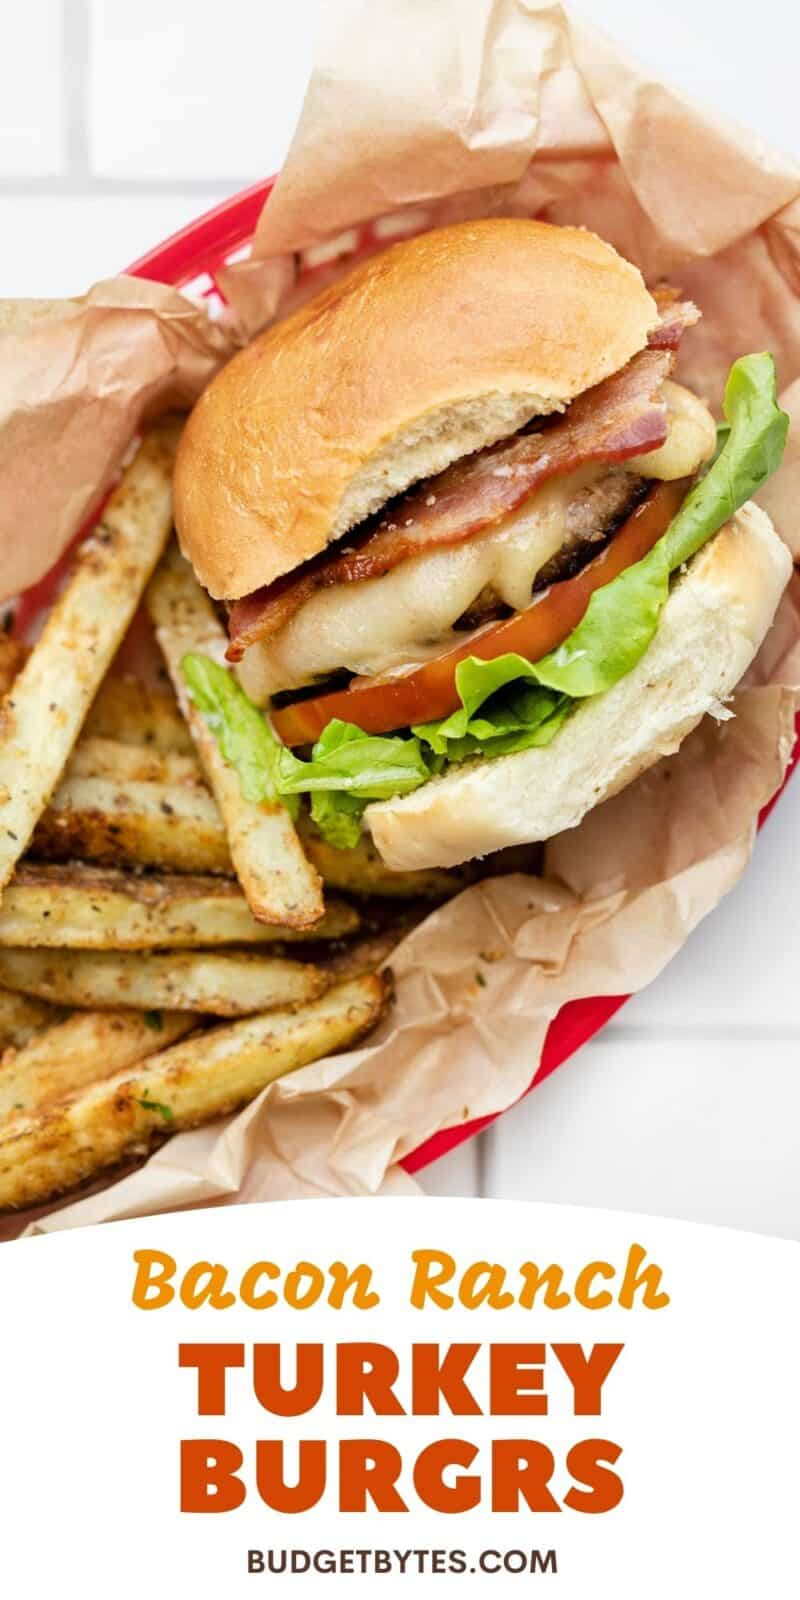 A bacon ranch turkey burger in a basket with fries, title text at the bottom